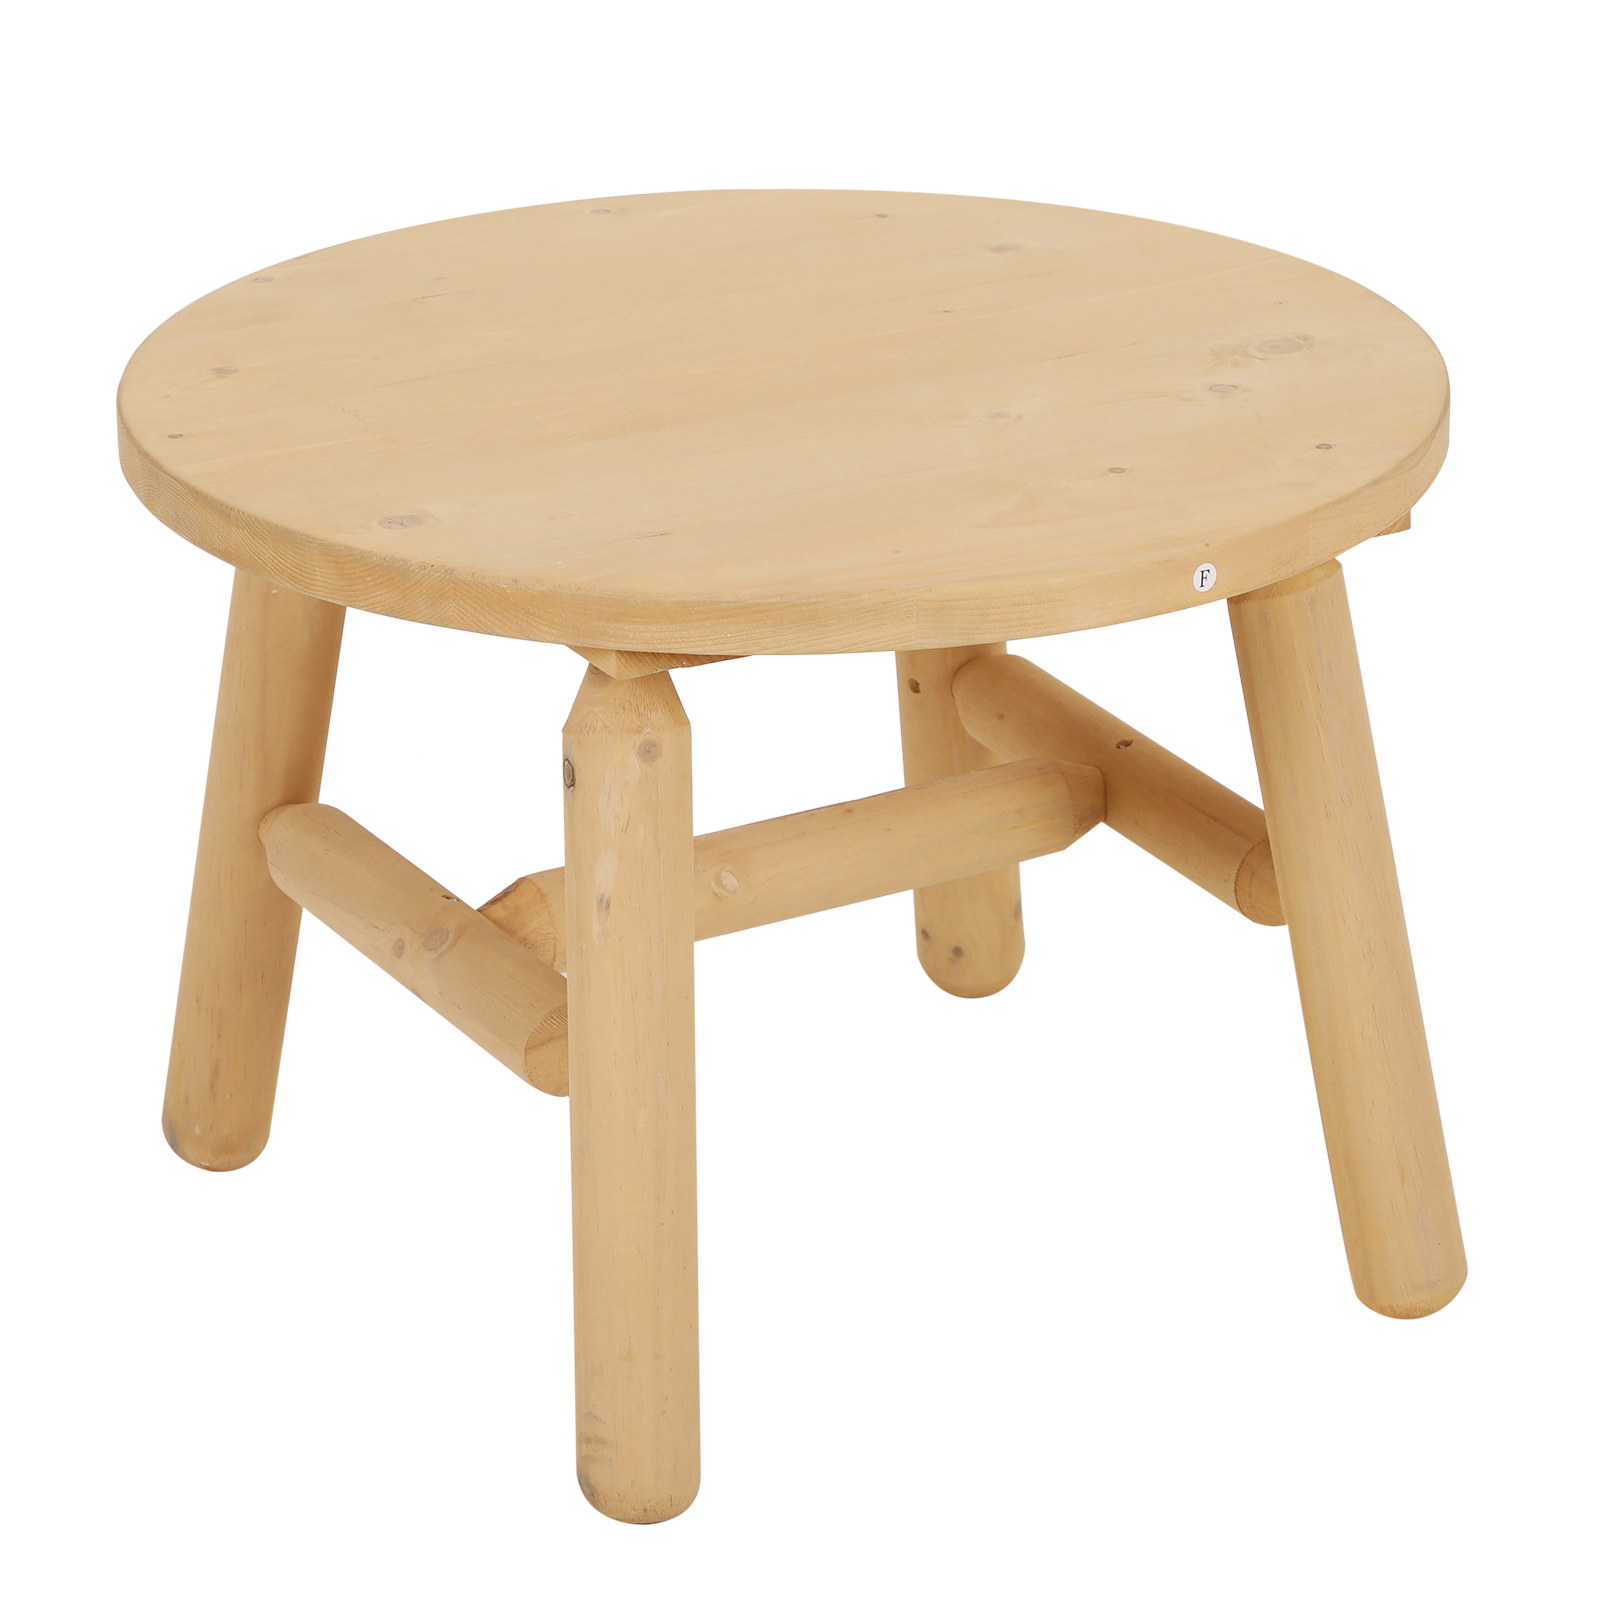 Outsunny Coffee Table Round Coffee Garden Ф63. 5x45 Cm Wood